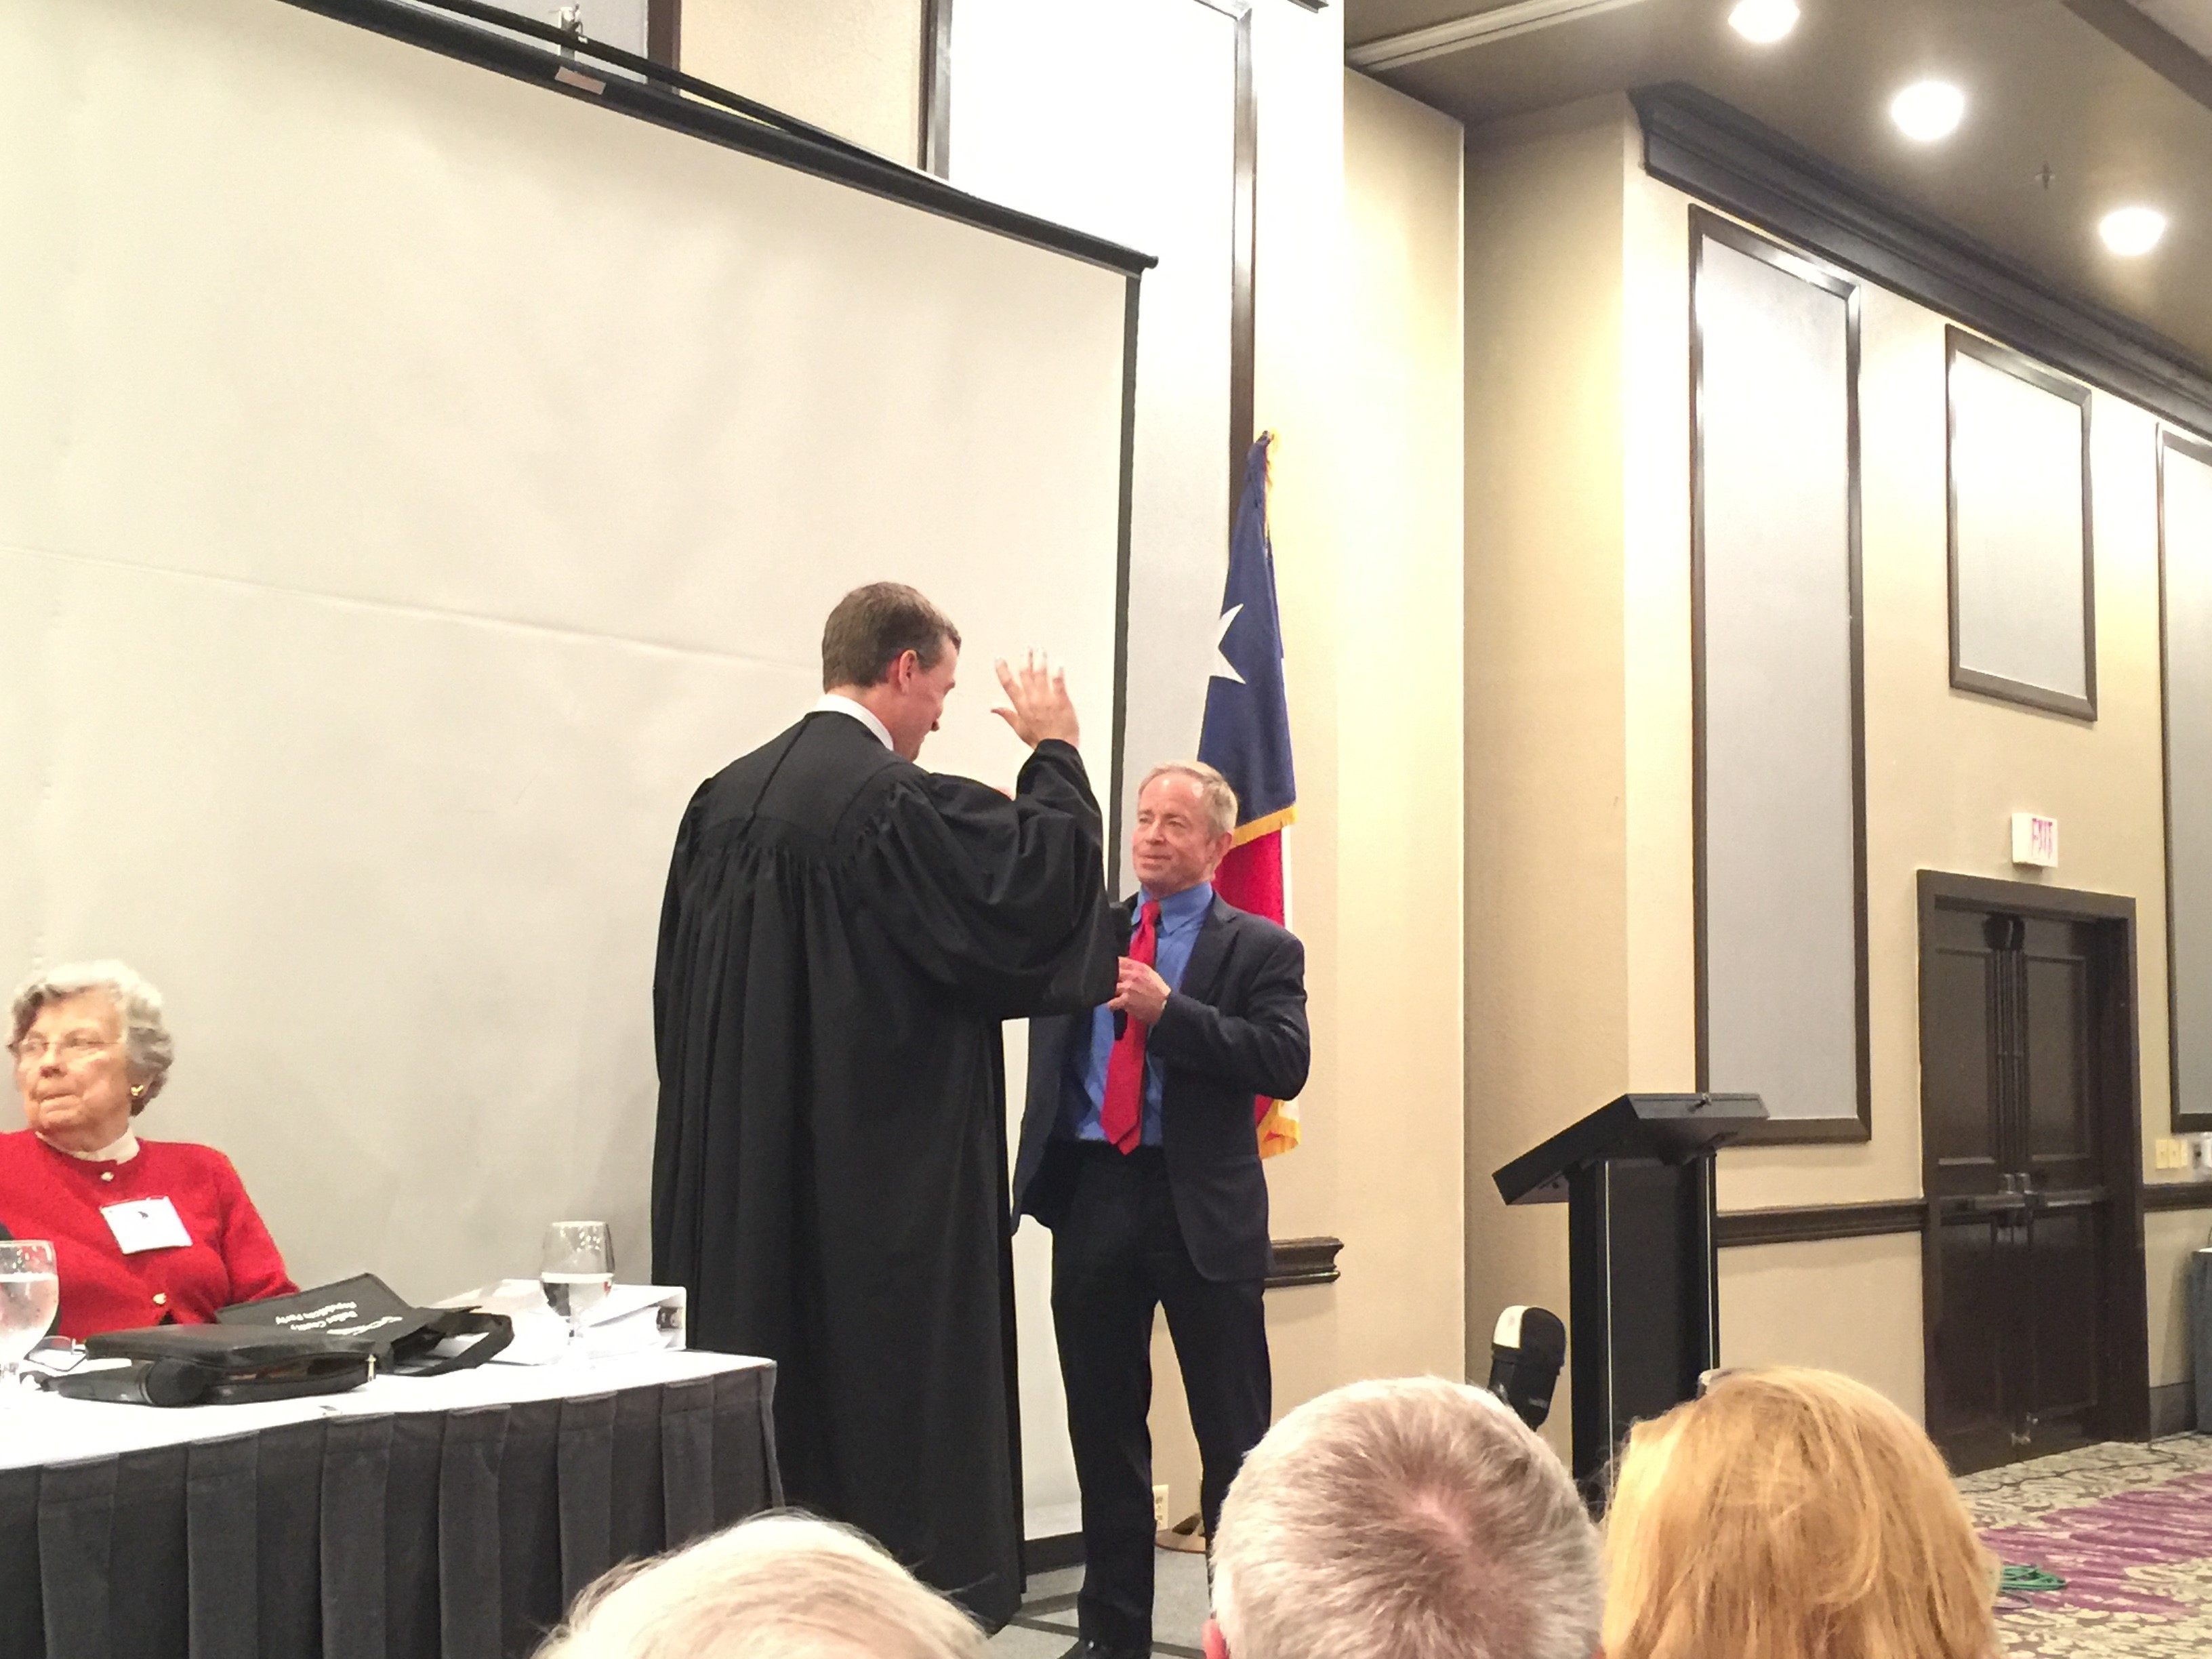 Phillip Huffines Elected New Chairman of Dallas County GOP